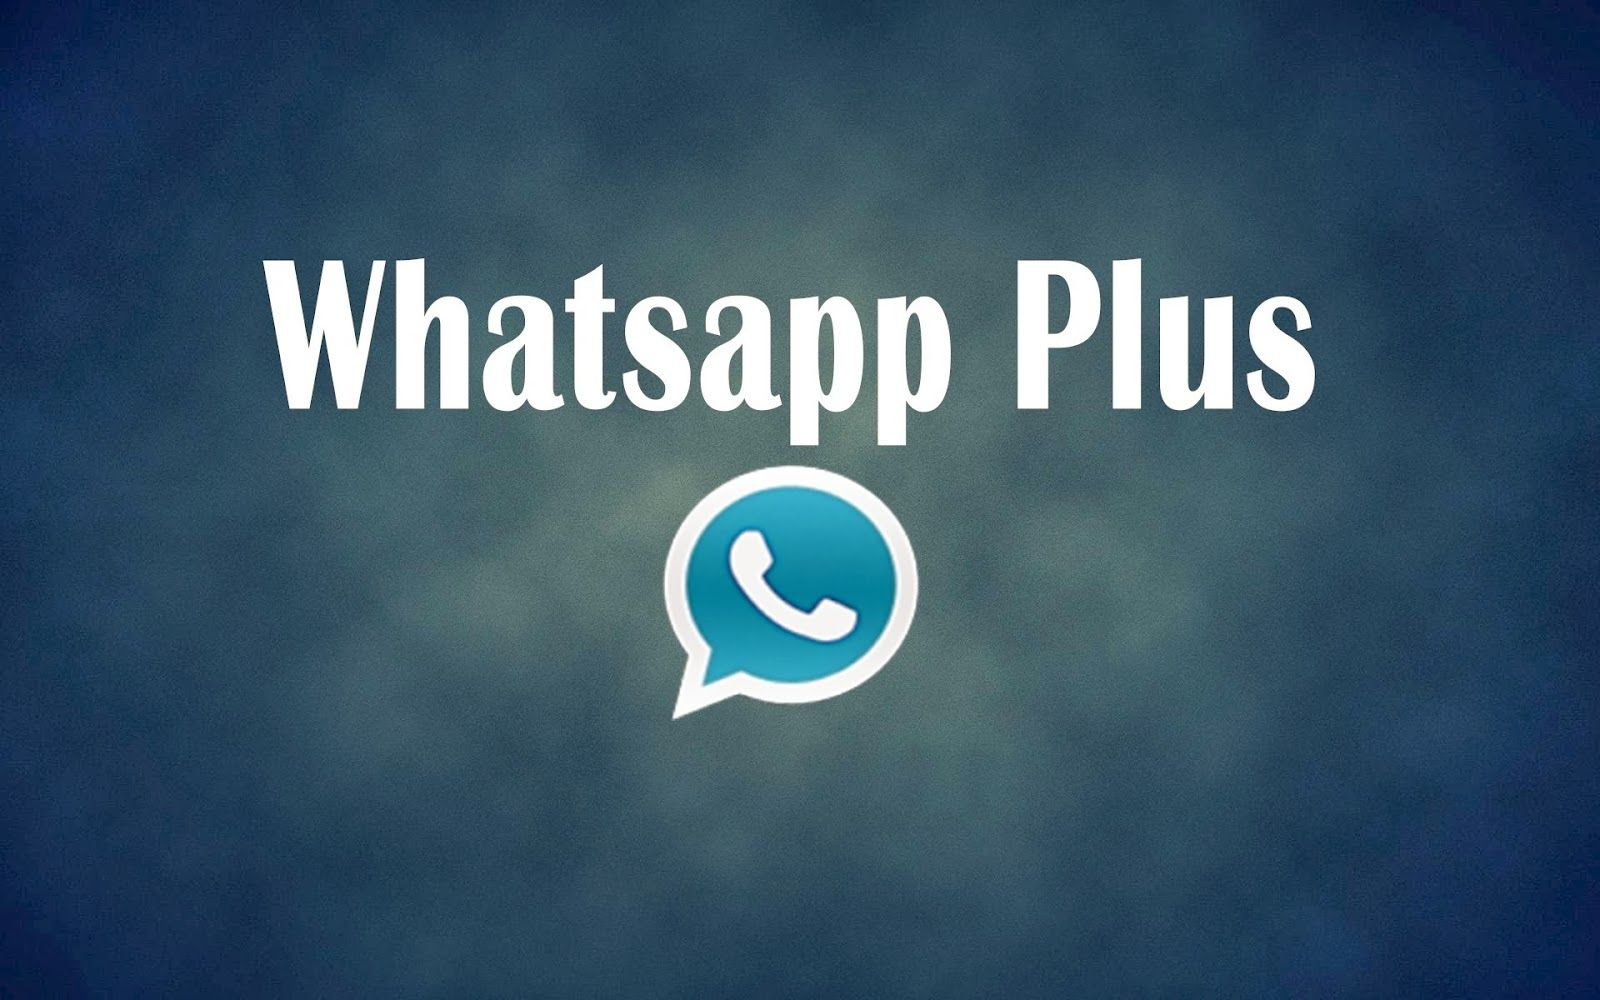 Whatsapp Plus Download New Version That Prevents You From Getting